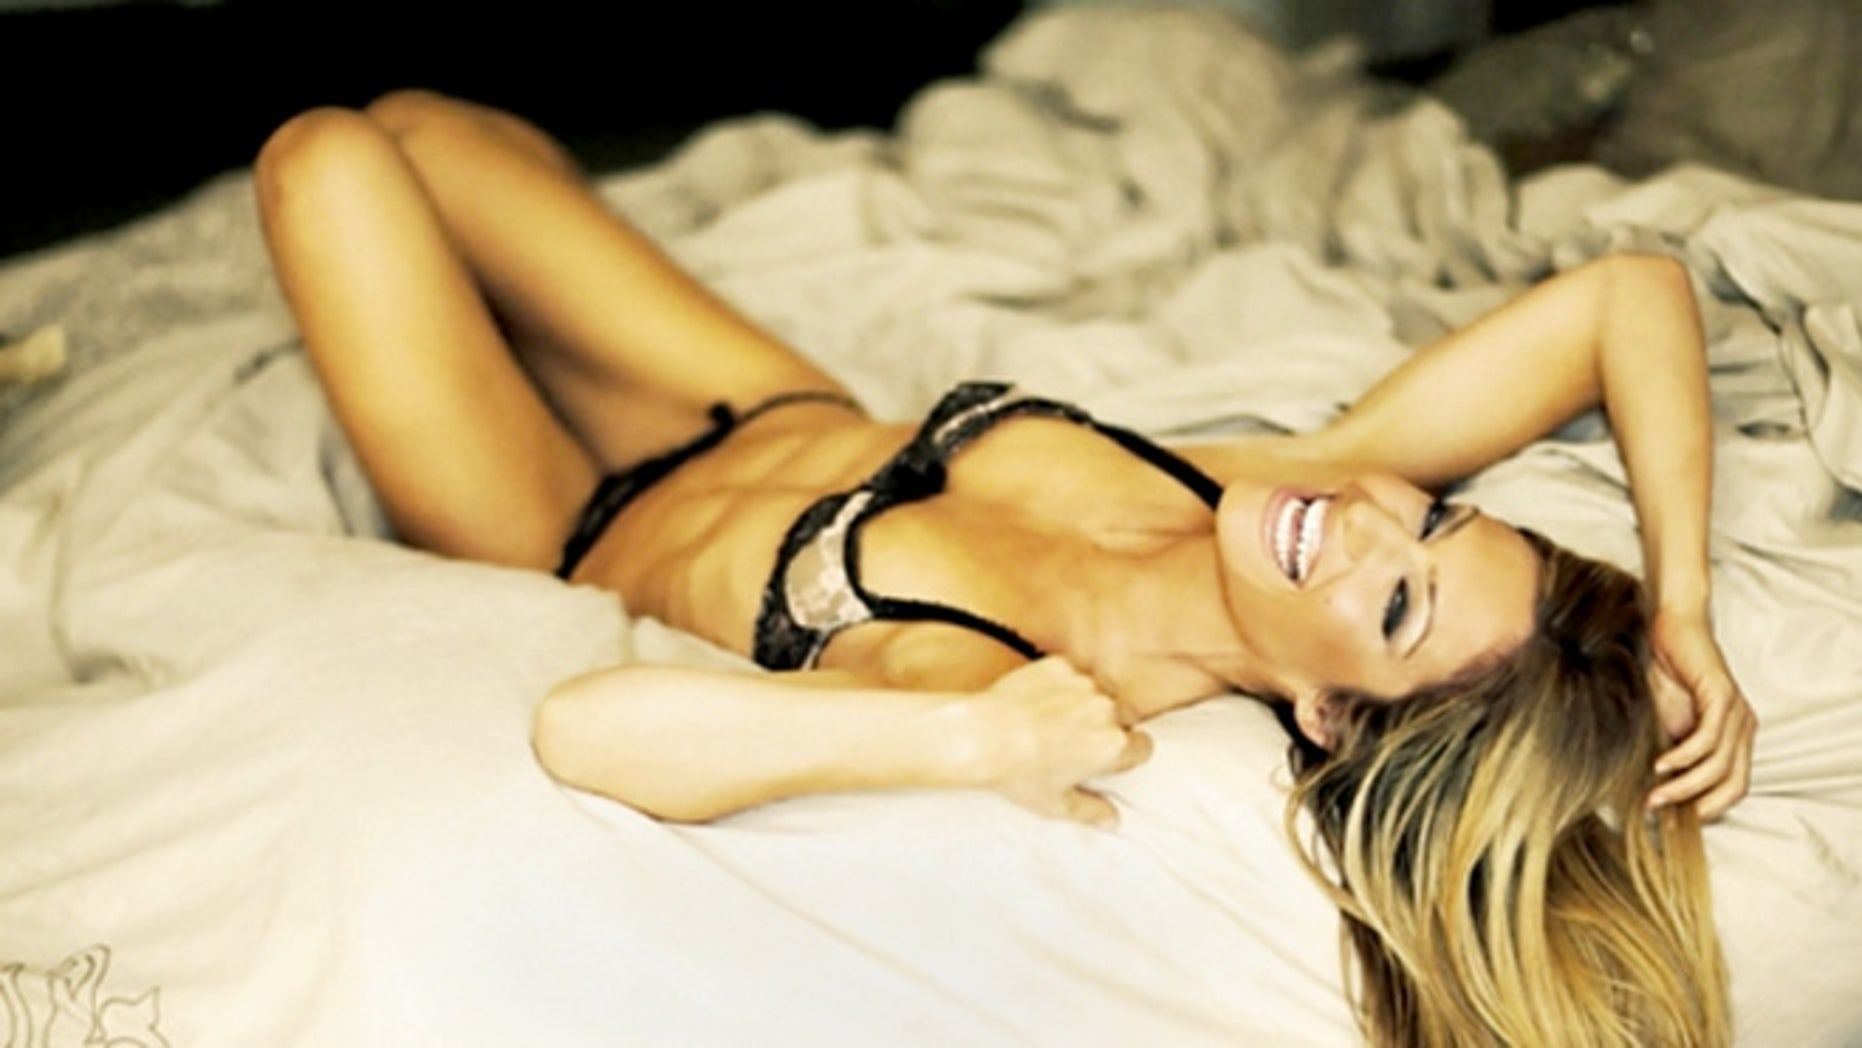 Rebecca Cardon sure looks happy to be in bed alone.